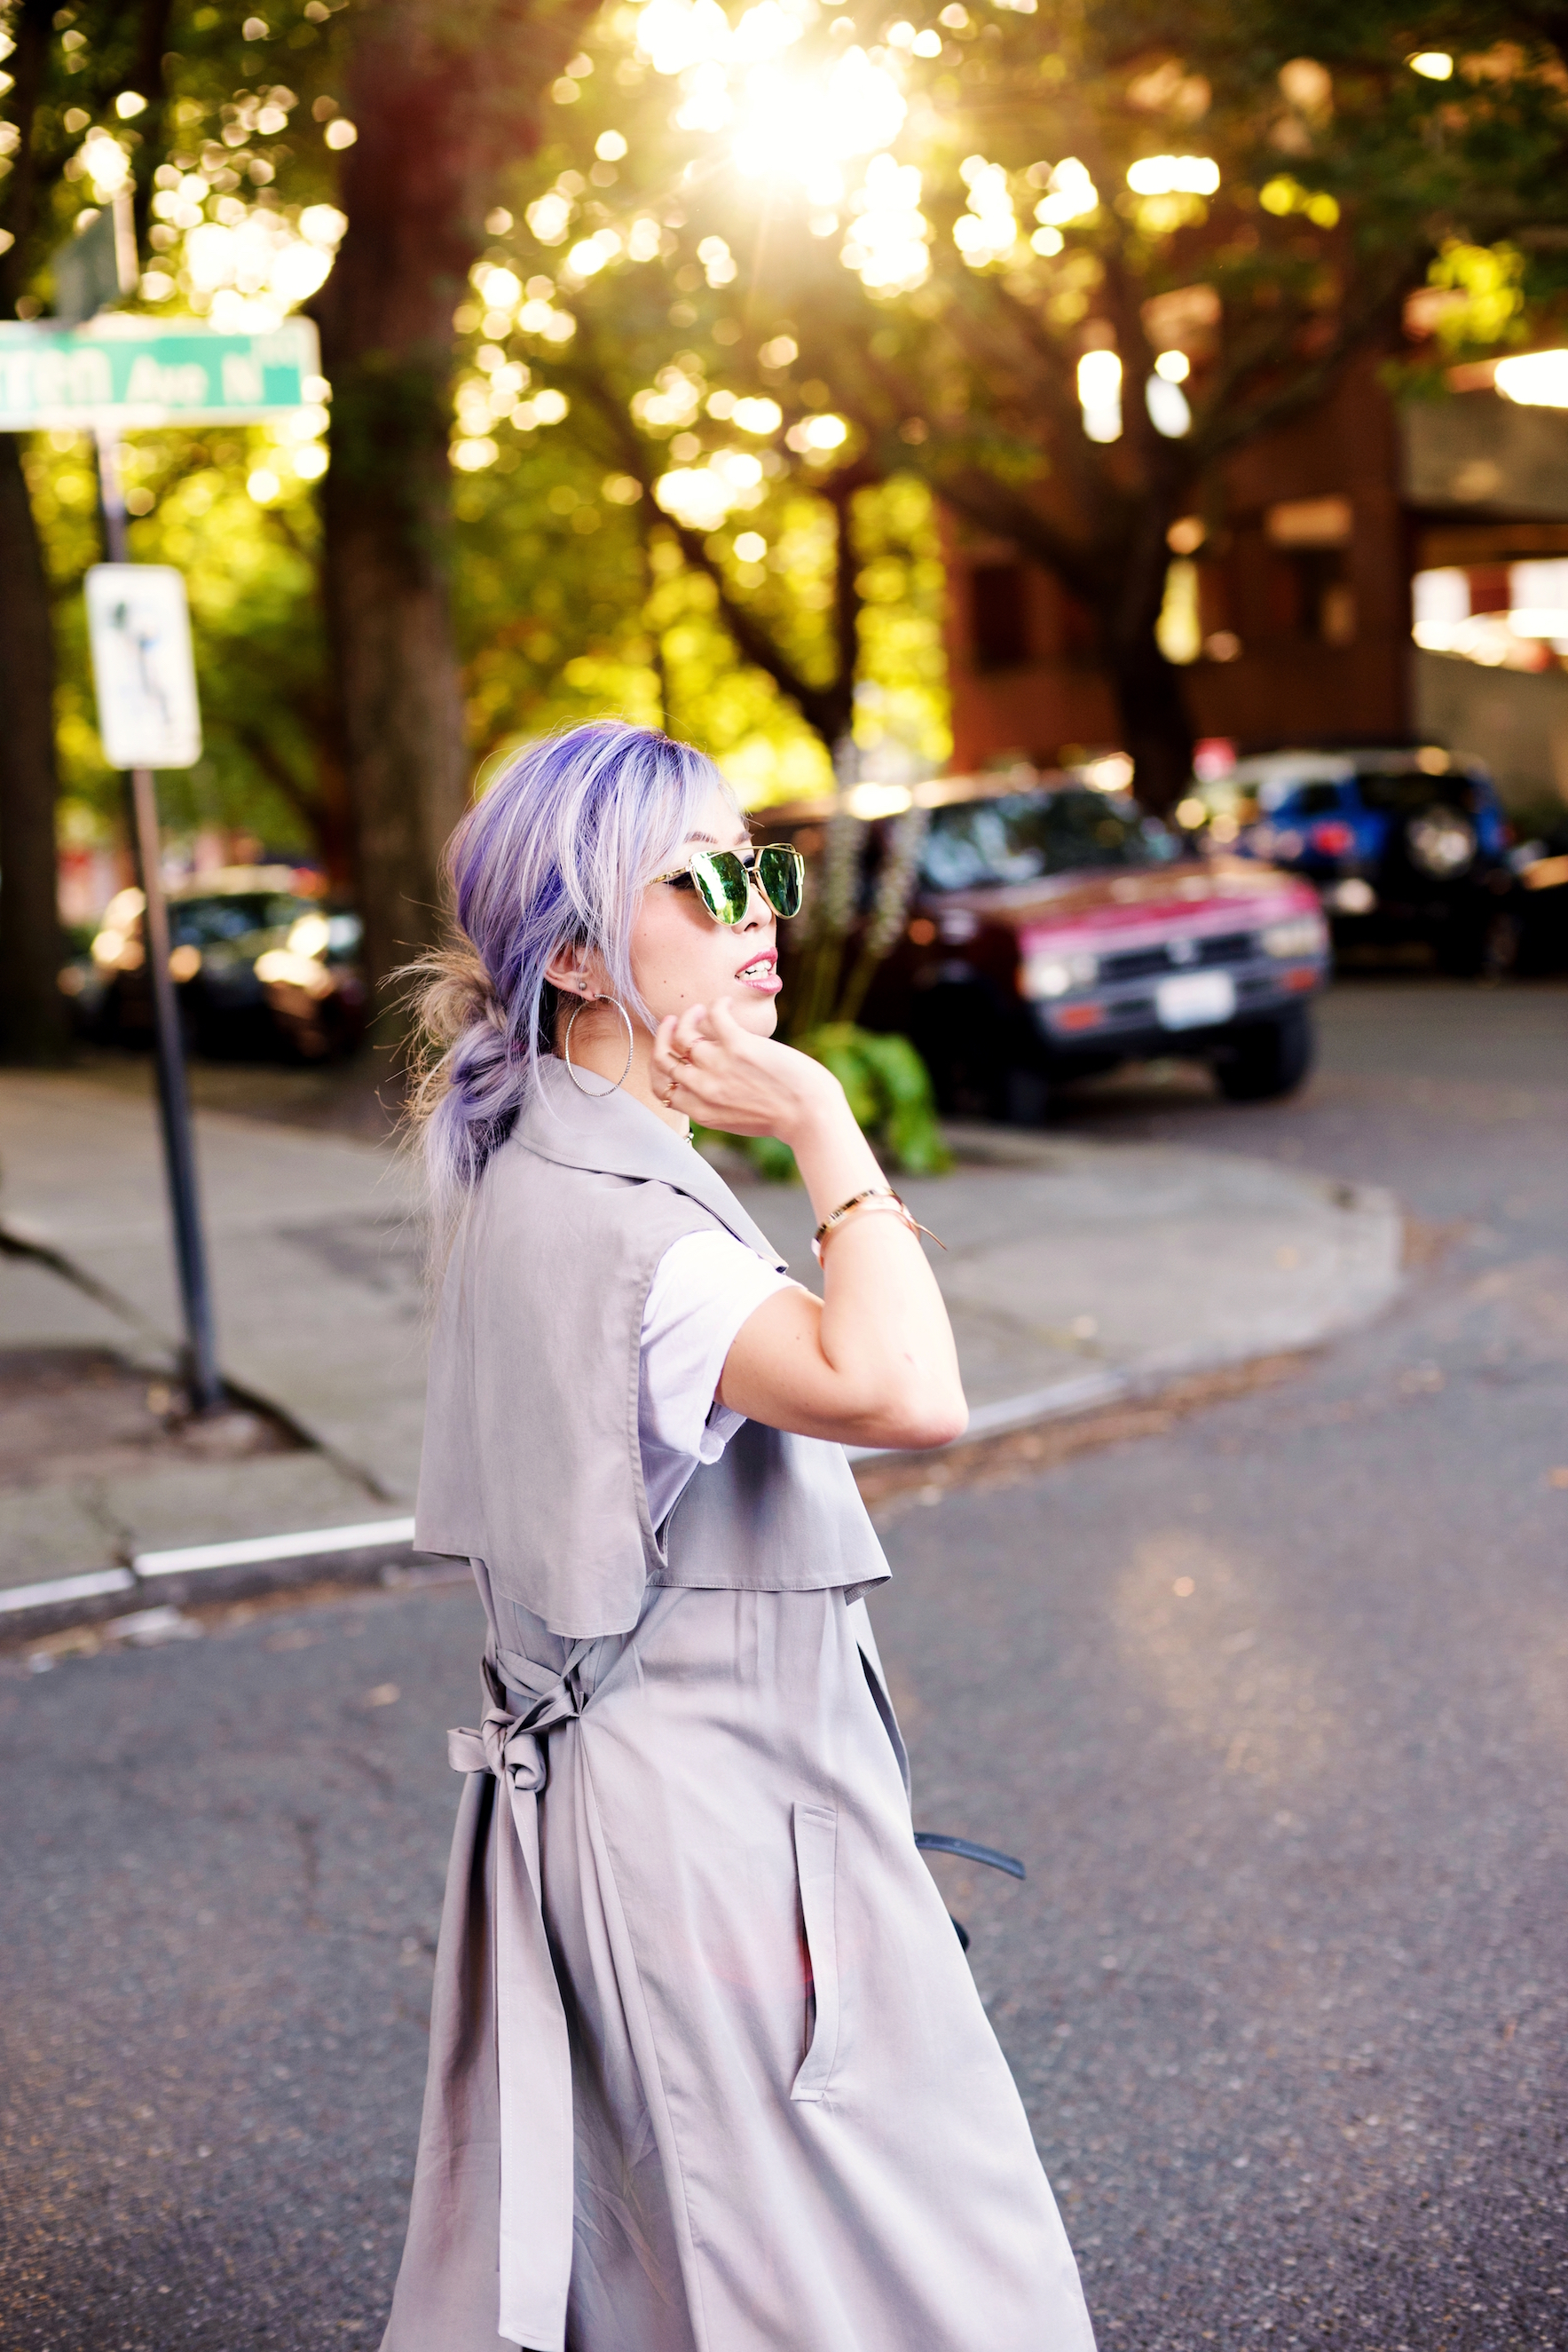 Dezzal Grey Trench Coat_TOPSHOP White T-shirt_She Inside Highwaisted Denim Mini Skit_ALDO Patent Boots_ZARA Mini Bag_Suede Choker_Daniel Wellington Watch_Aikas Love Cloeset_Seattle Fashion Blogger from Japan_Lavender Hair_Messy low bun Hair 4